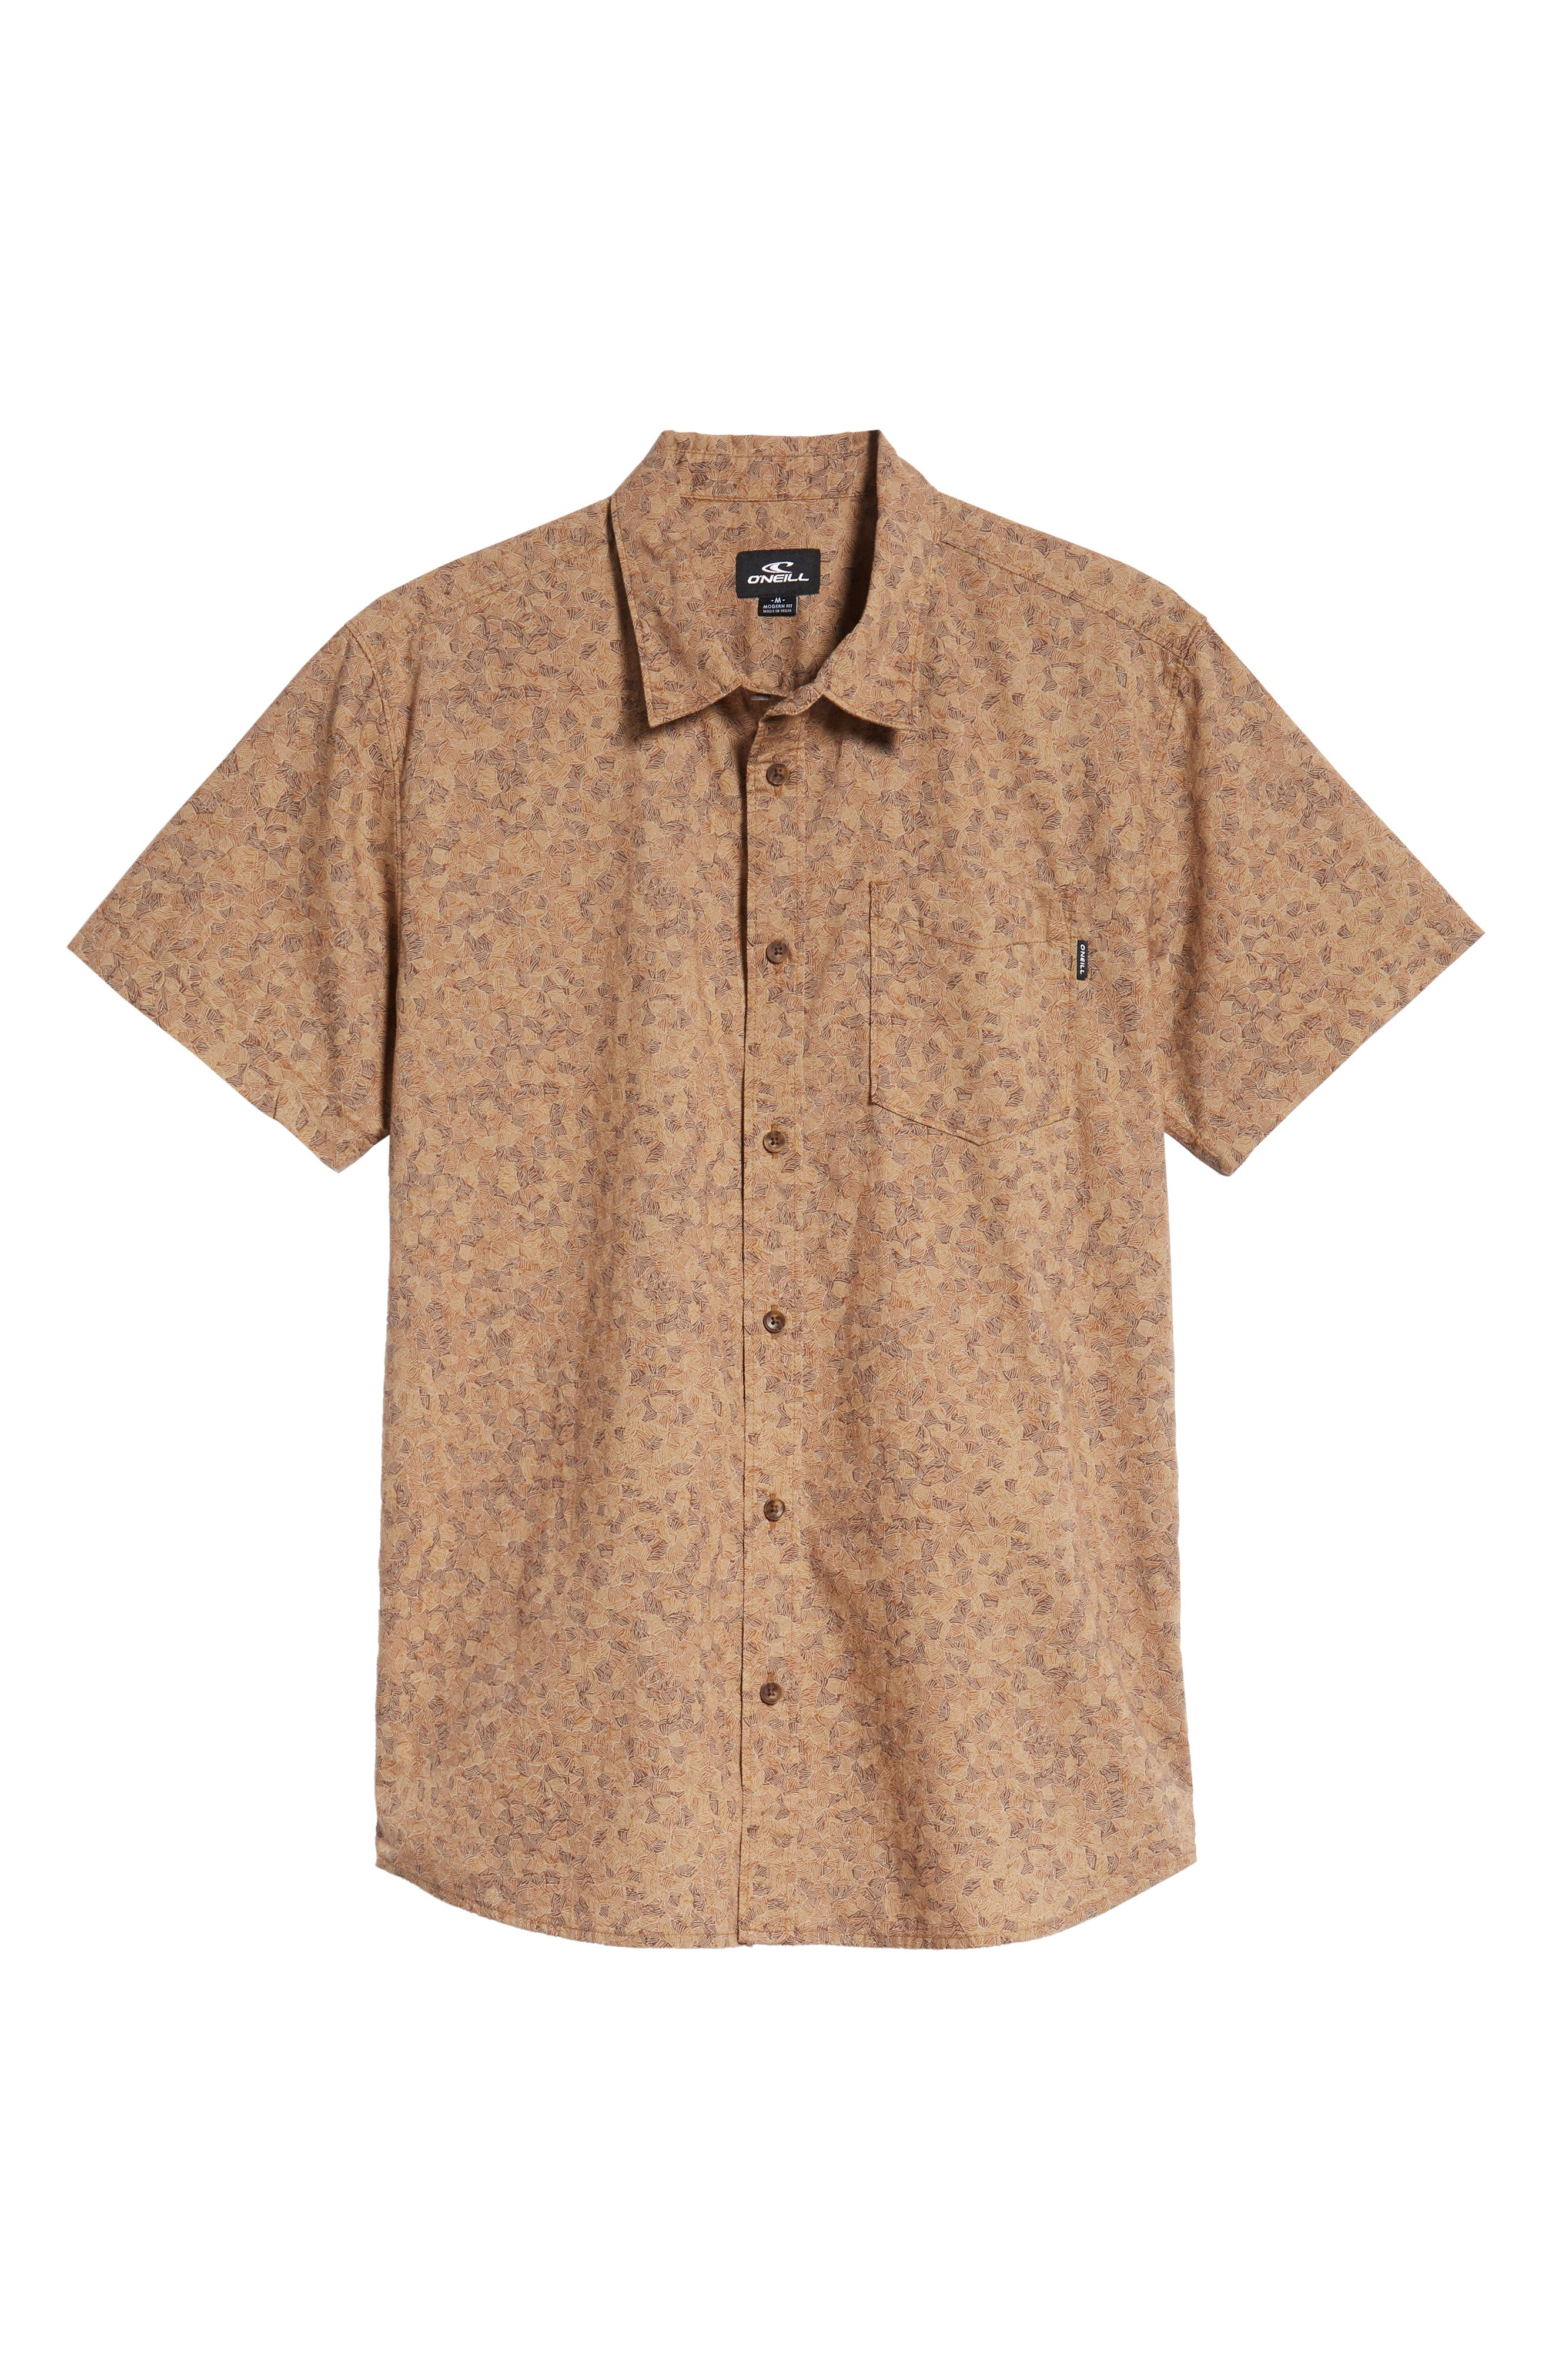 Structure Woven Shirt,                             Alternate thumbnail 5, color,                             213